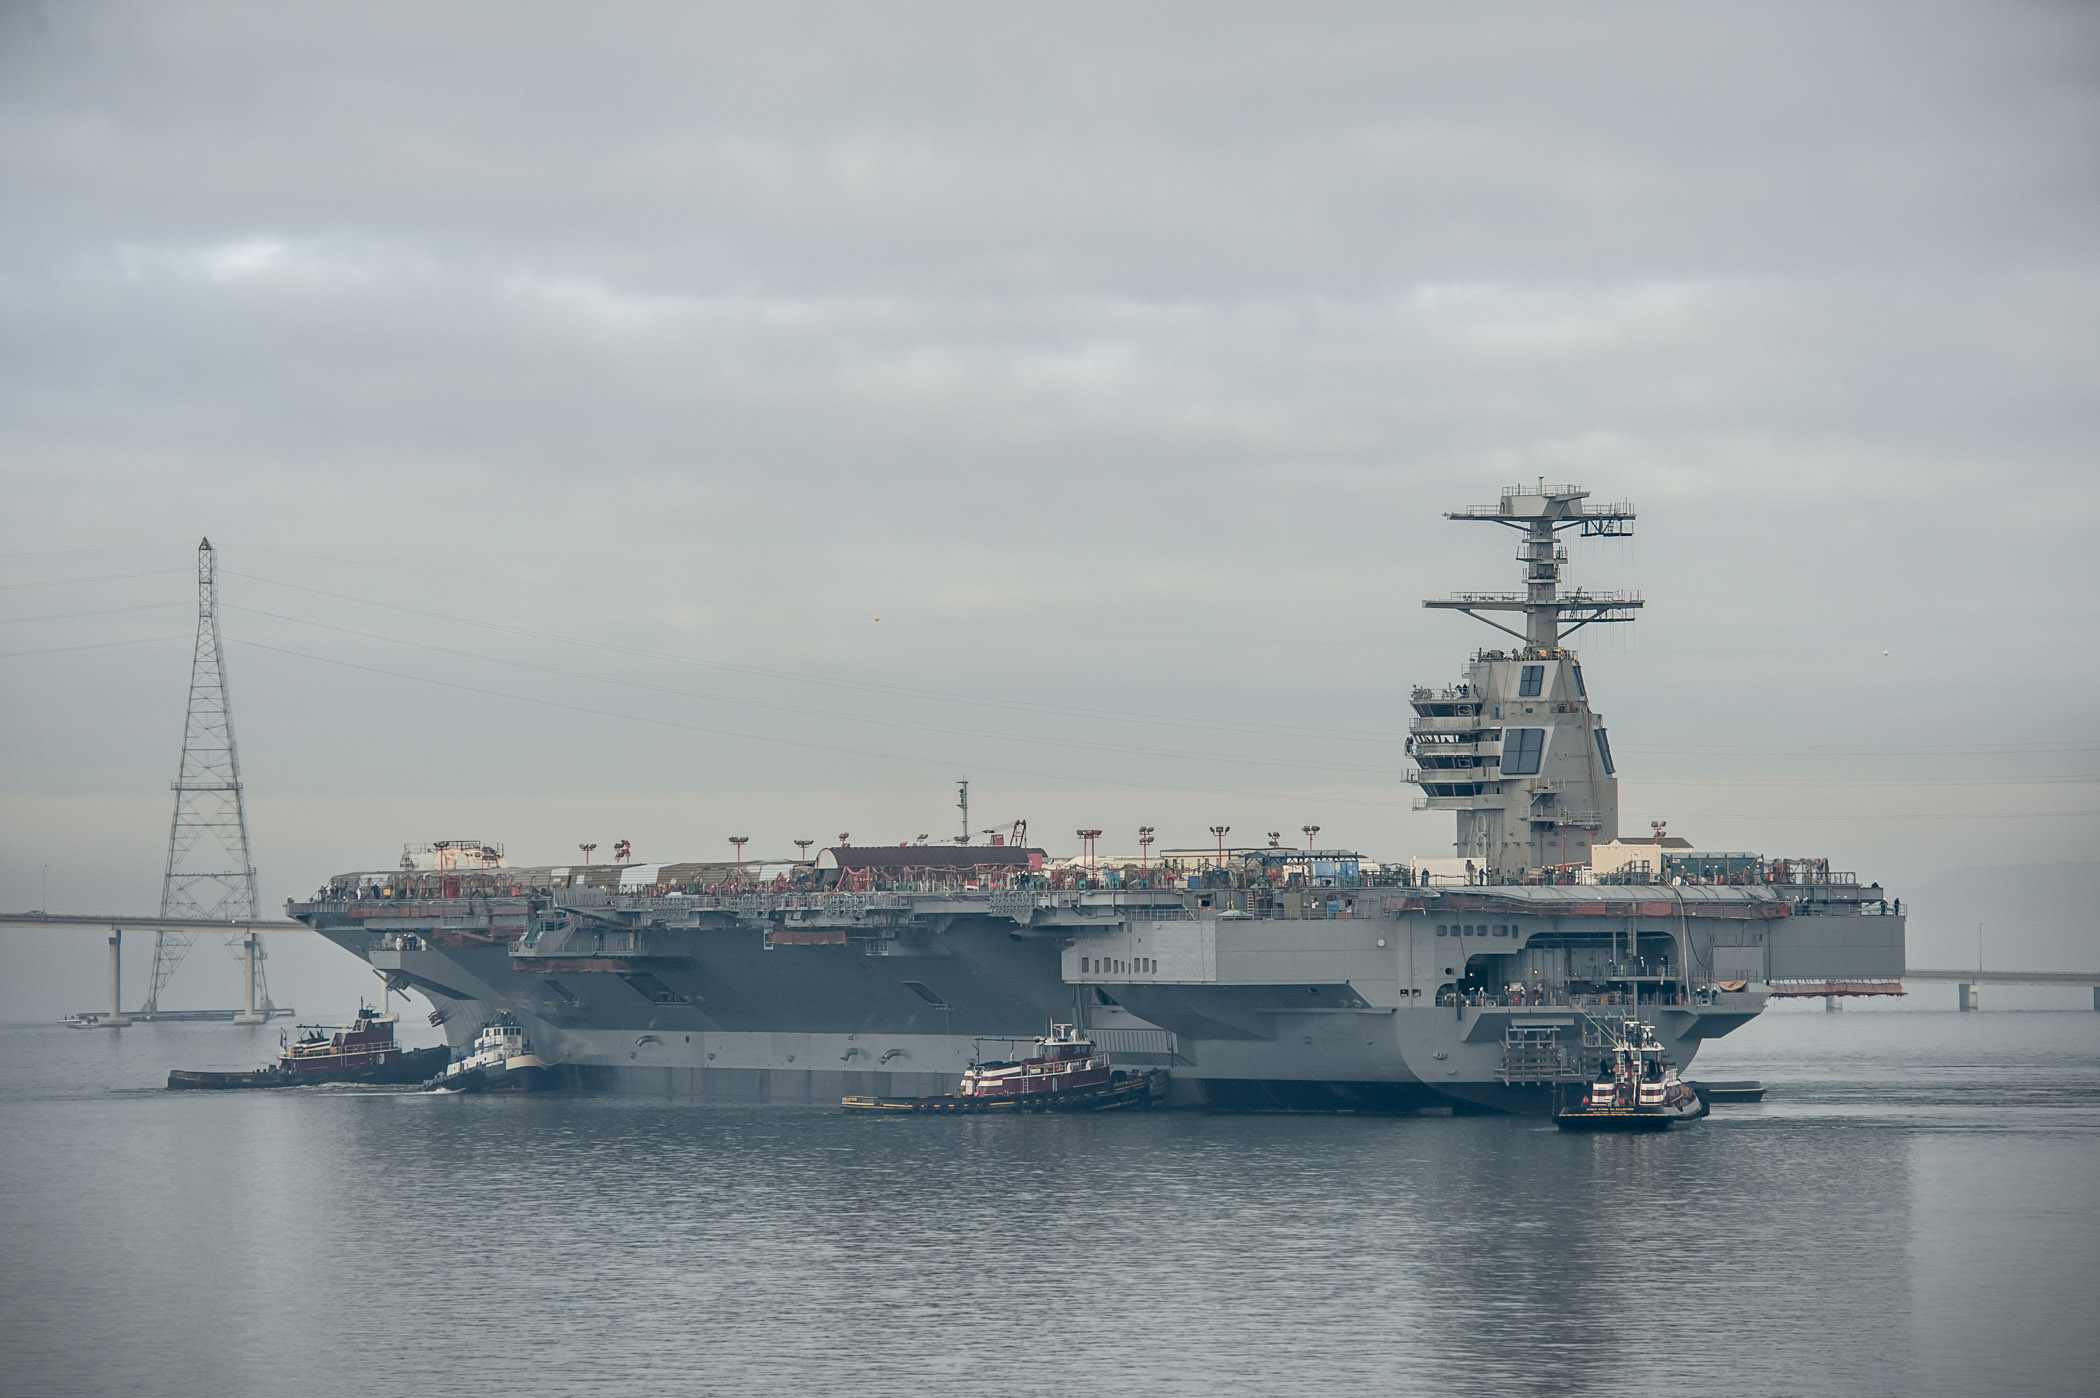 Gerald R. Ford (CVN 78) Moved to Pier 3